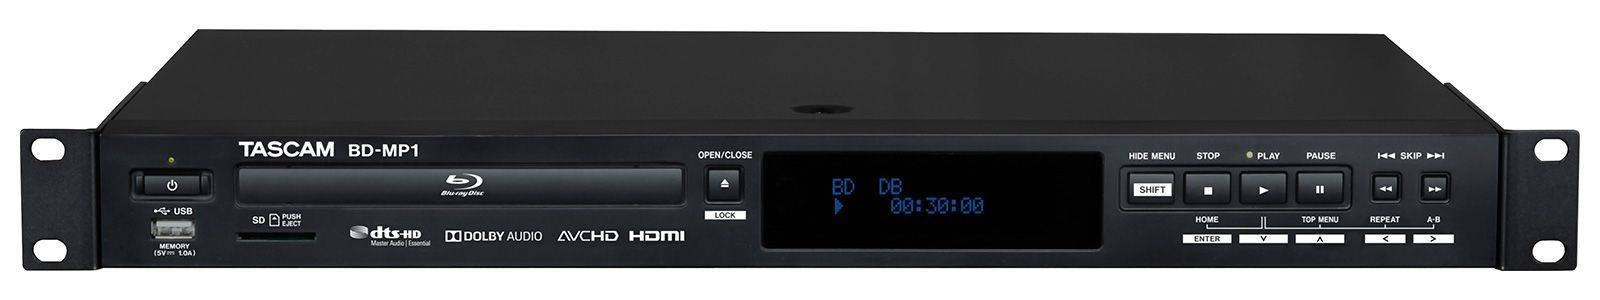 Tascam BD-MP1 Professional-Grade Blu-Ray and USB Media Player bd-mp-1 Product Image 9